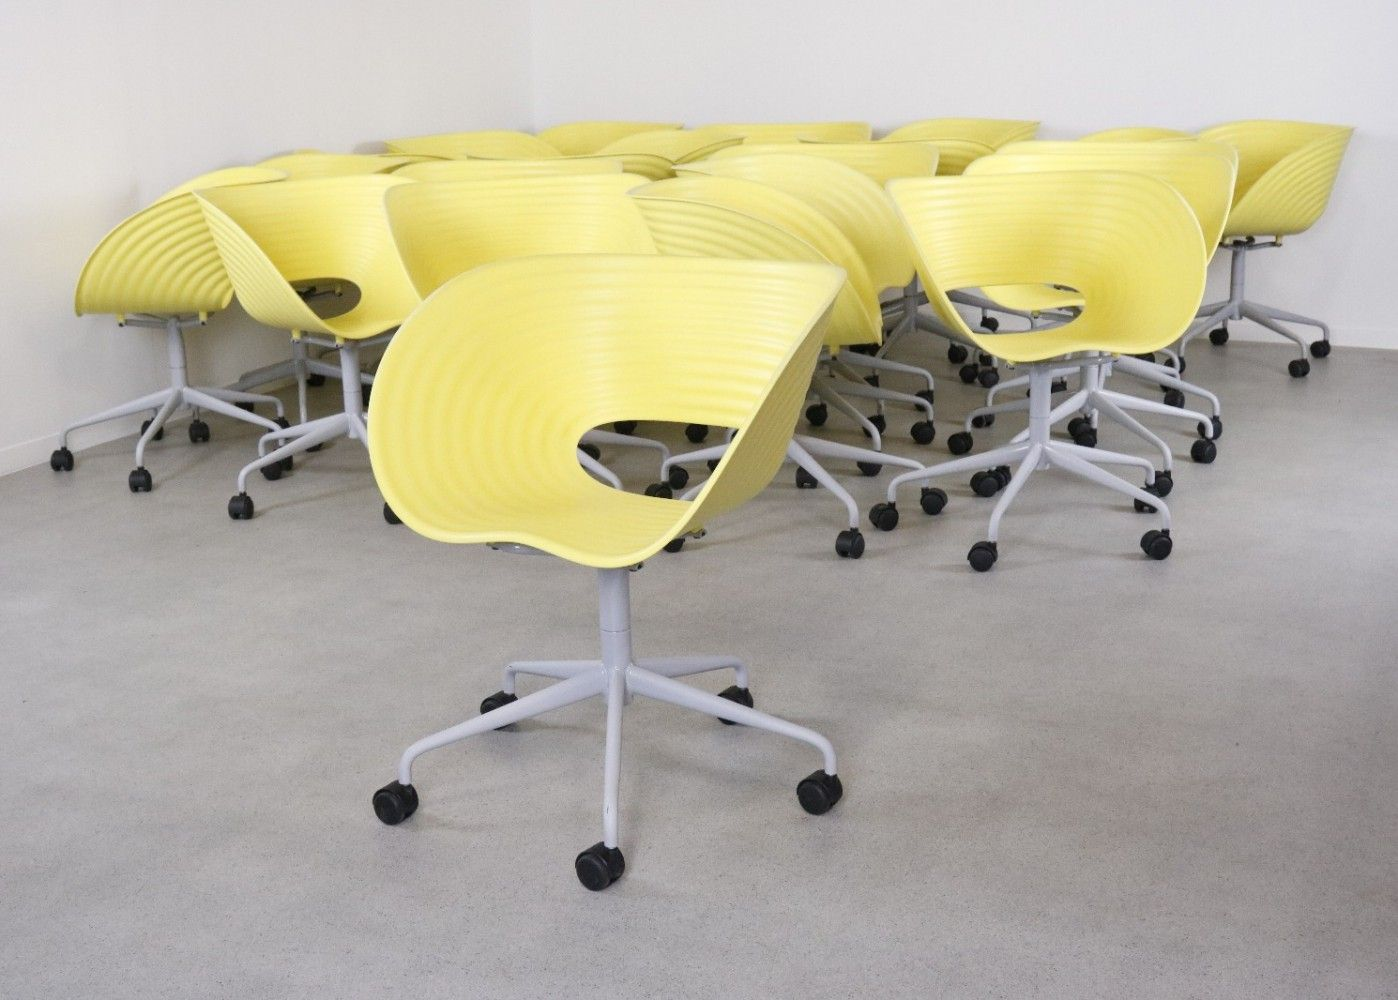 22 Tom Vac Swivel Office Chairs By Ron Arad For Vitra 1999